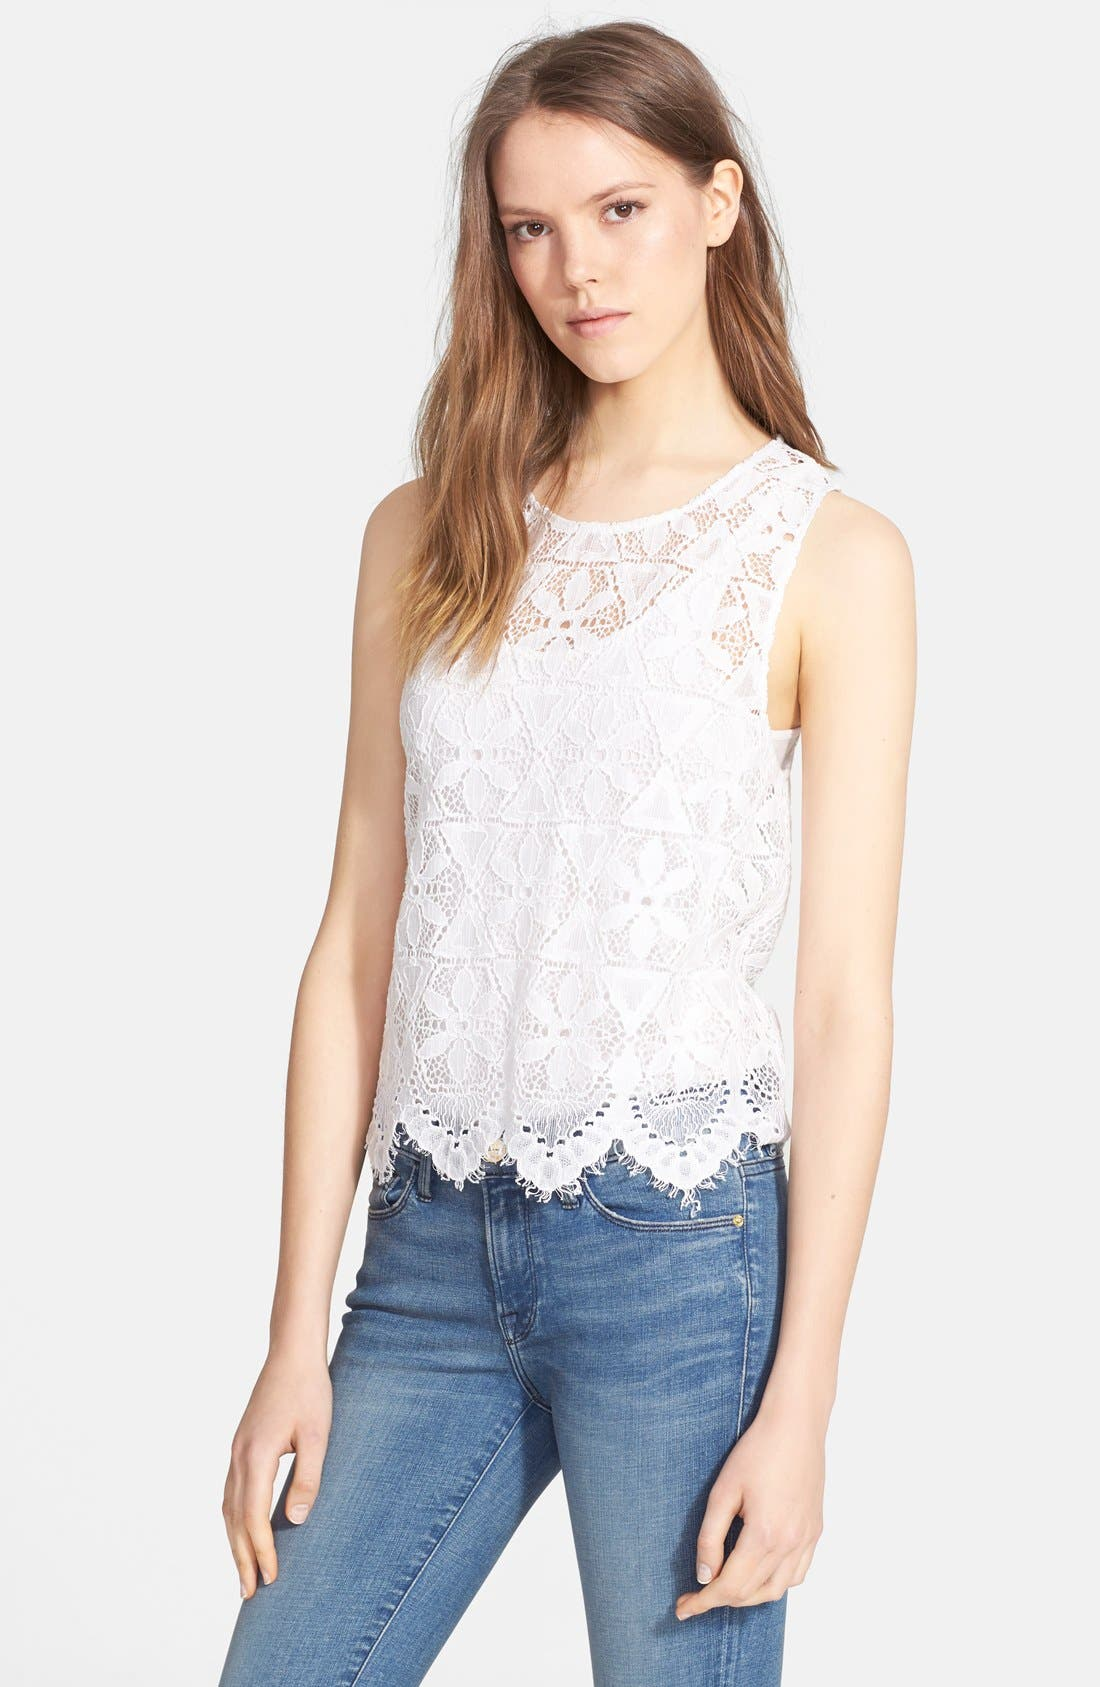 Alternate Image 1 Selected - Frame Denim 'Le Lace' Tank